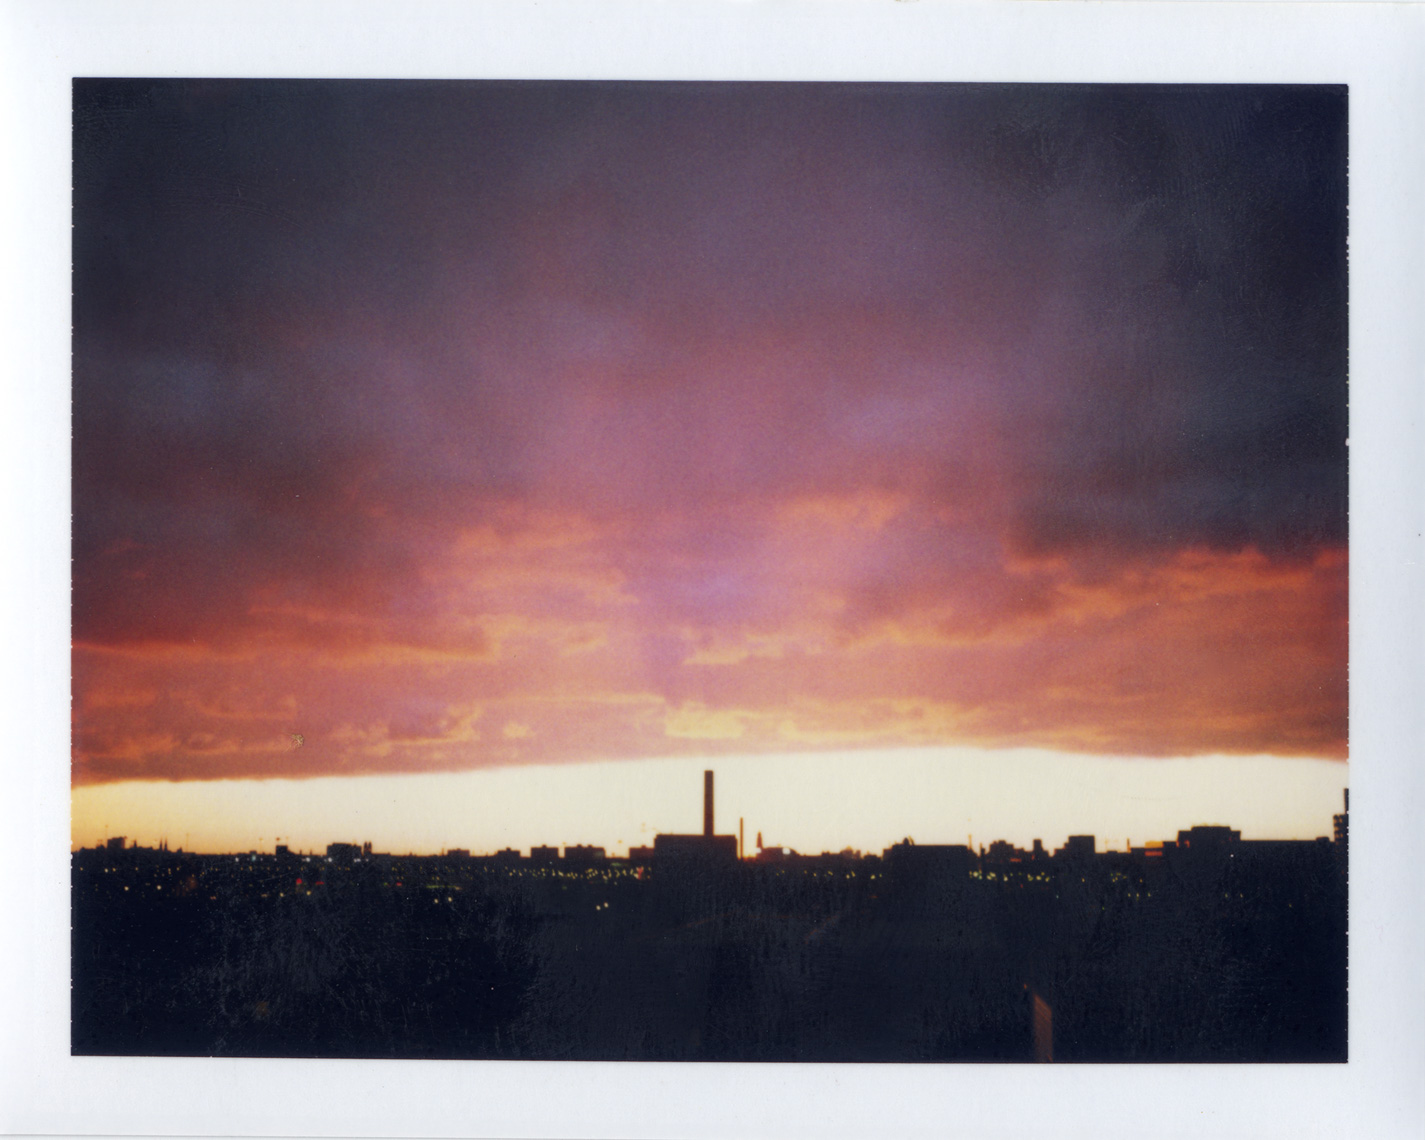 Purple orange Chicago sky shot on Polaroid